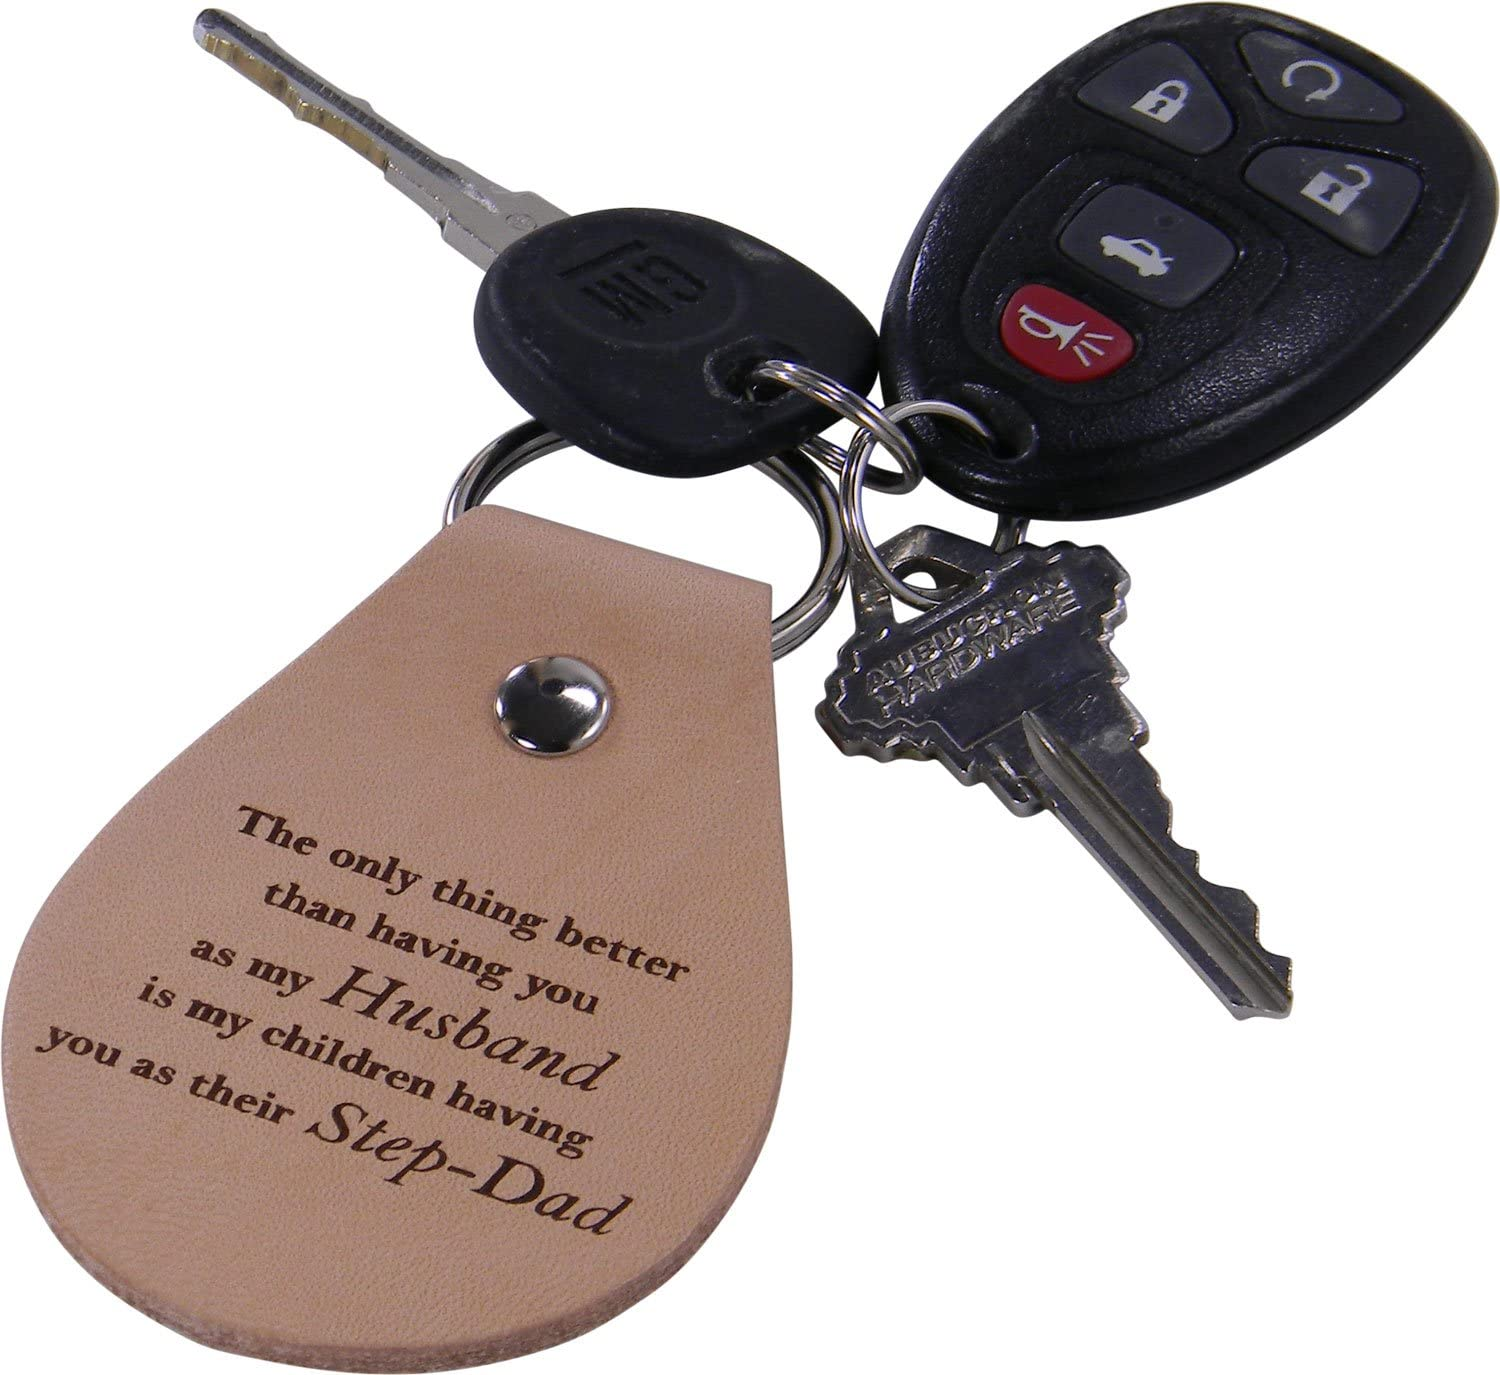 CustomGiftsNow Only Thing Better Than Having You as My Dad is My Children Having You as Their Poppop Leather Key Chain